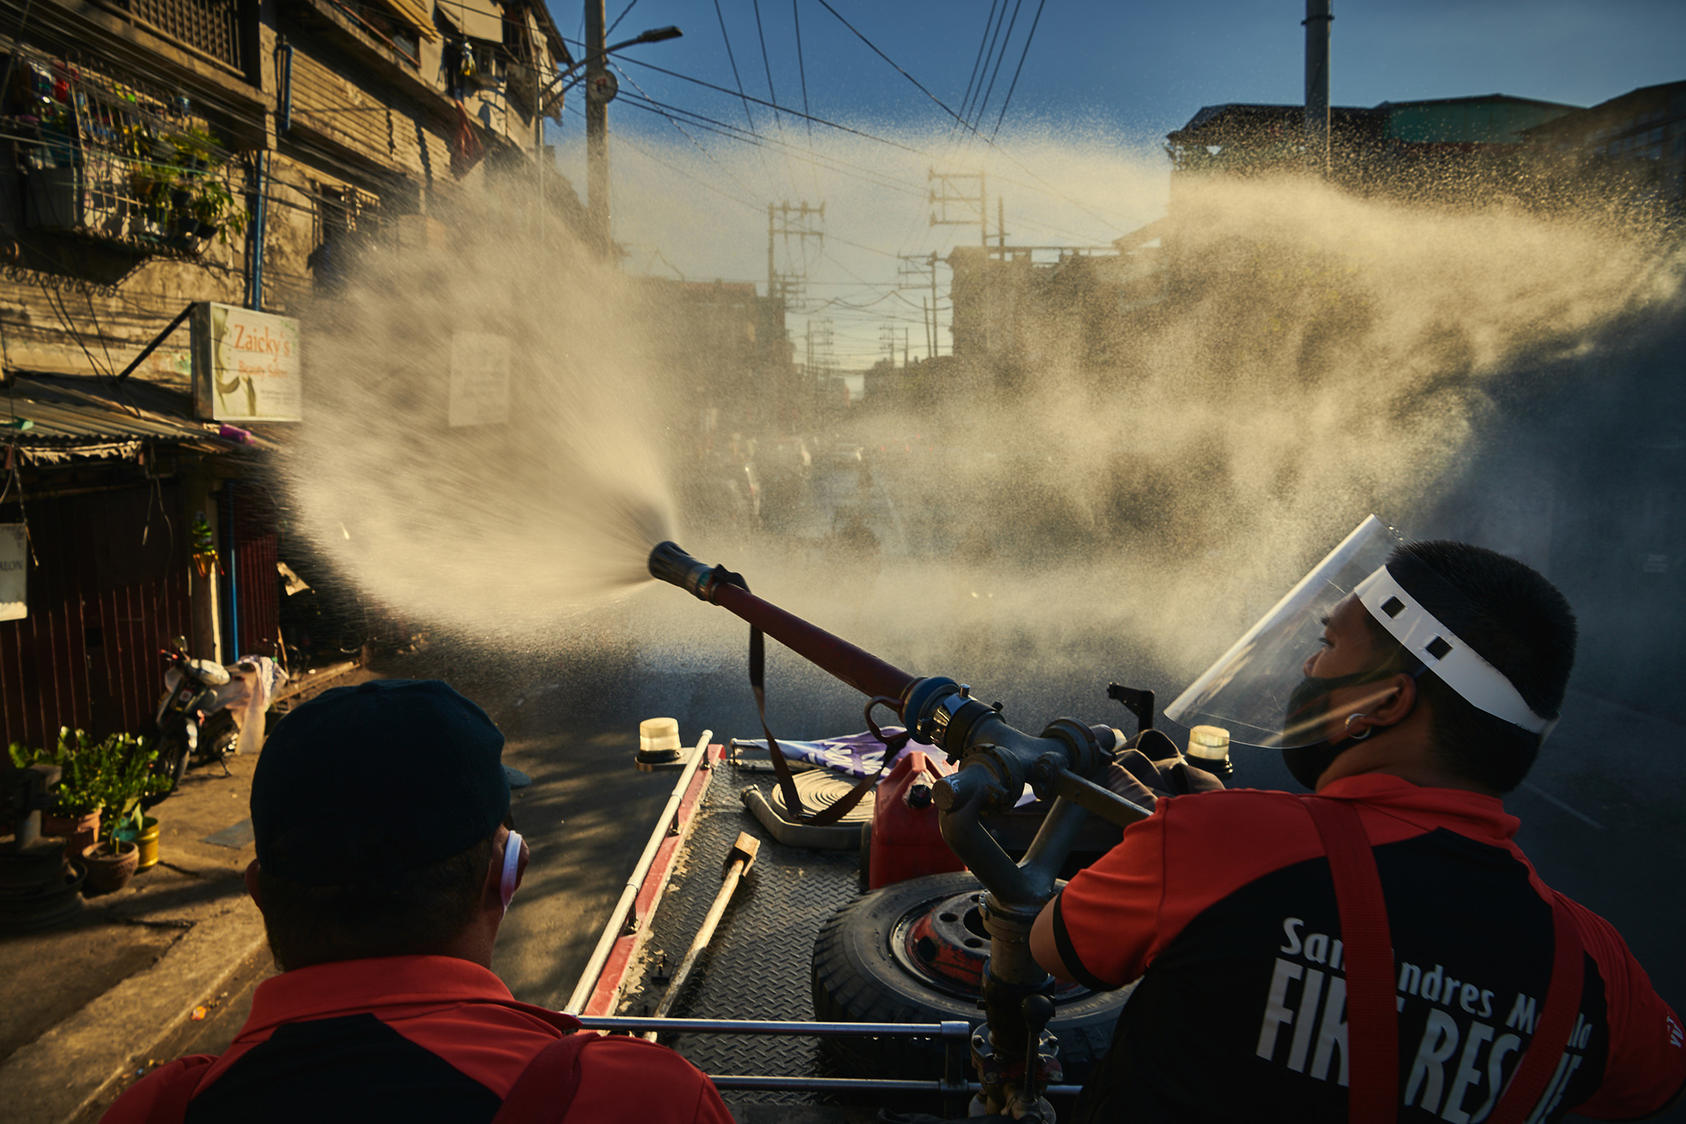 Firefighters spray disinfectant along a road in Manila, Philippines, on April 6, 2020, in an effort to keep the coronavirus from spreading. (Photo by Jes Aznar/New York Times)